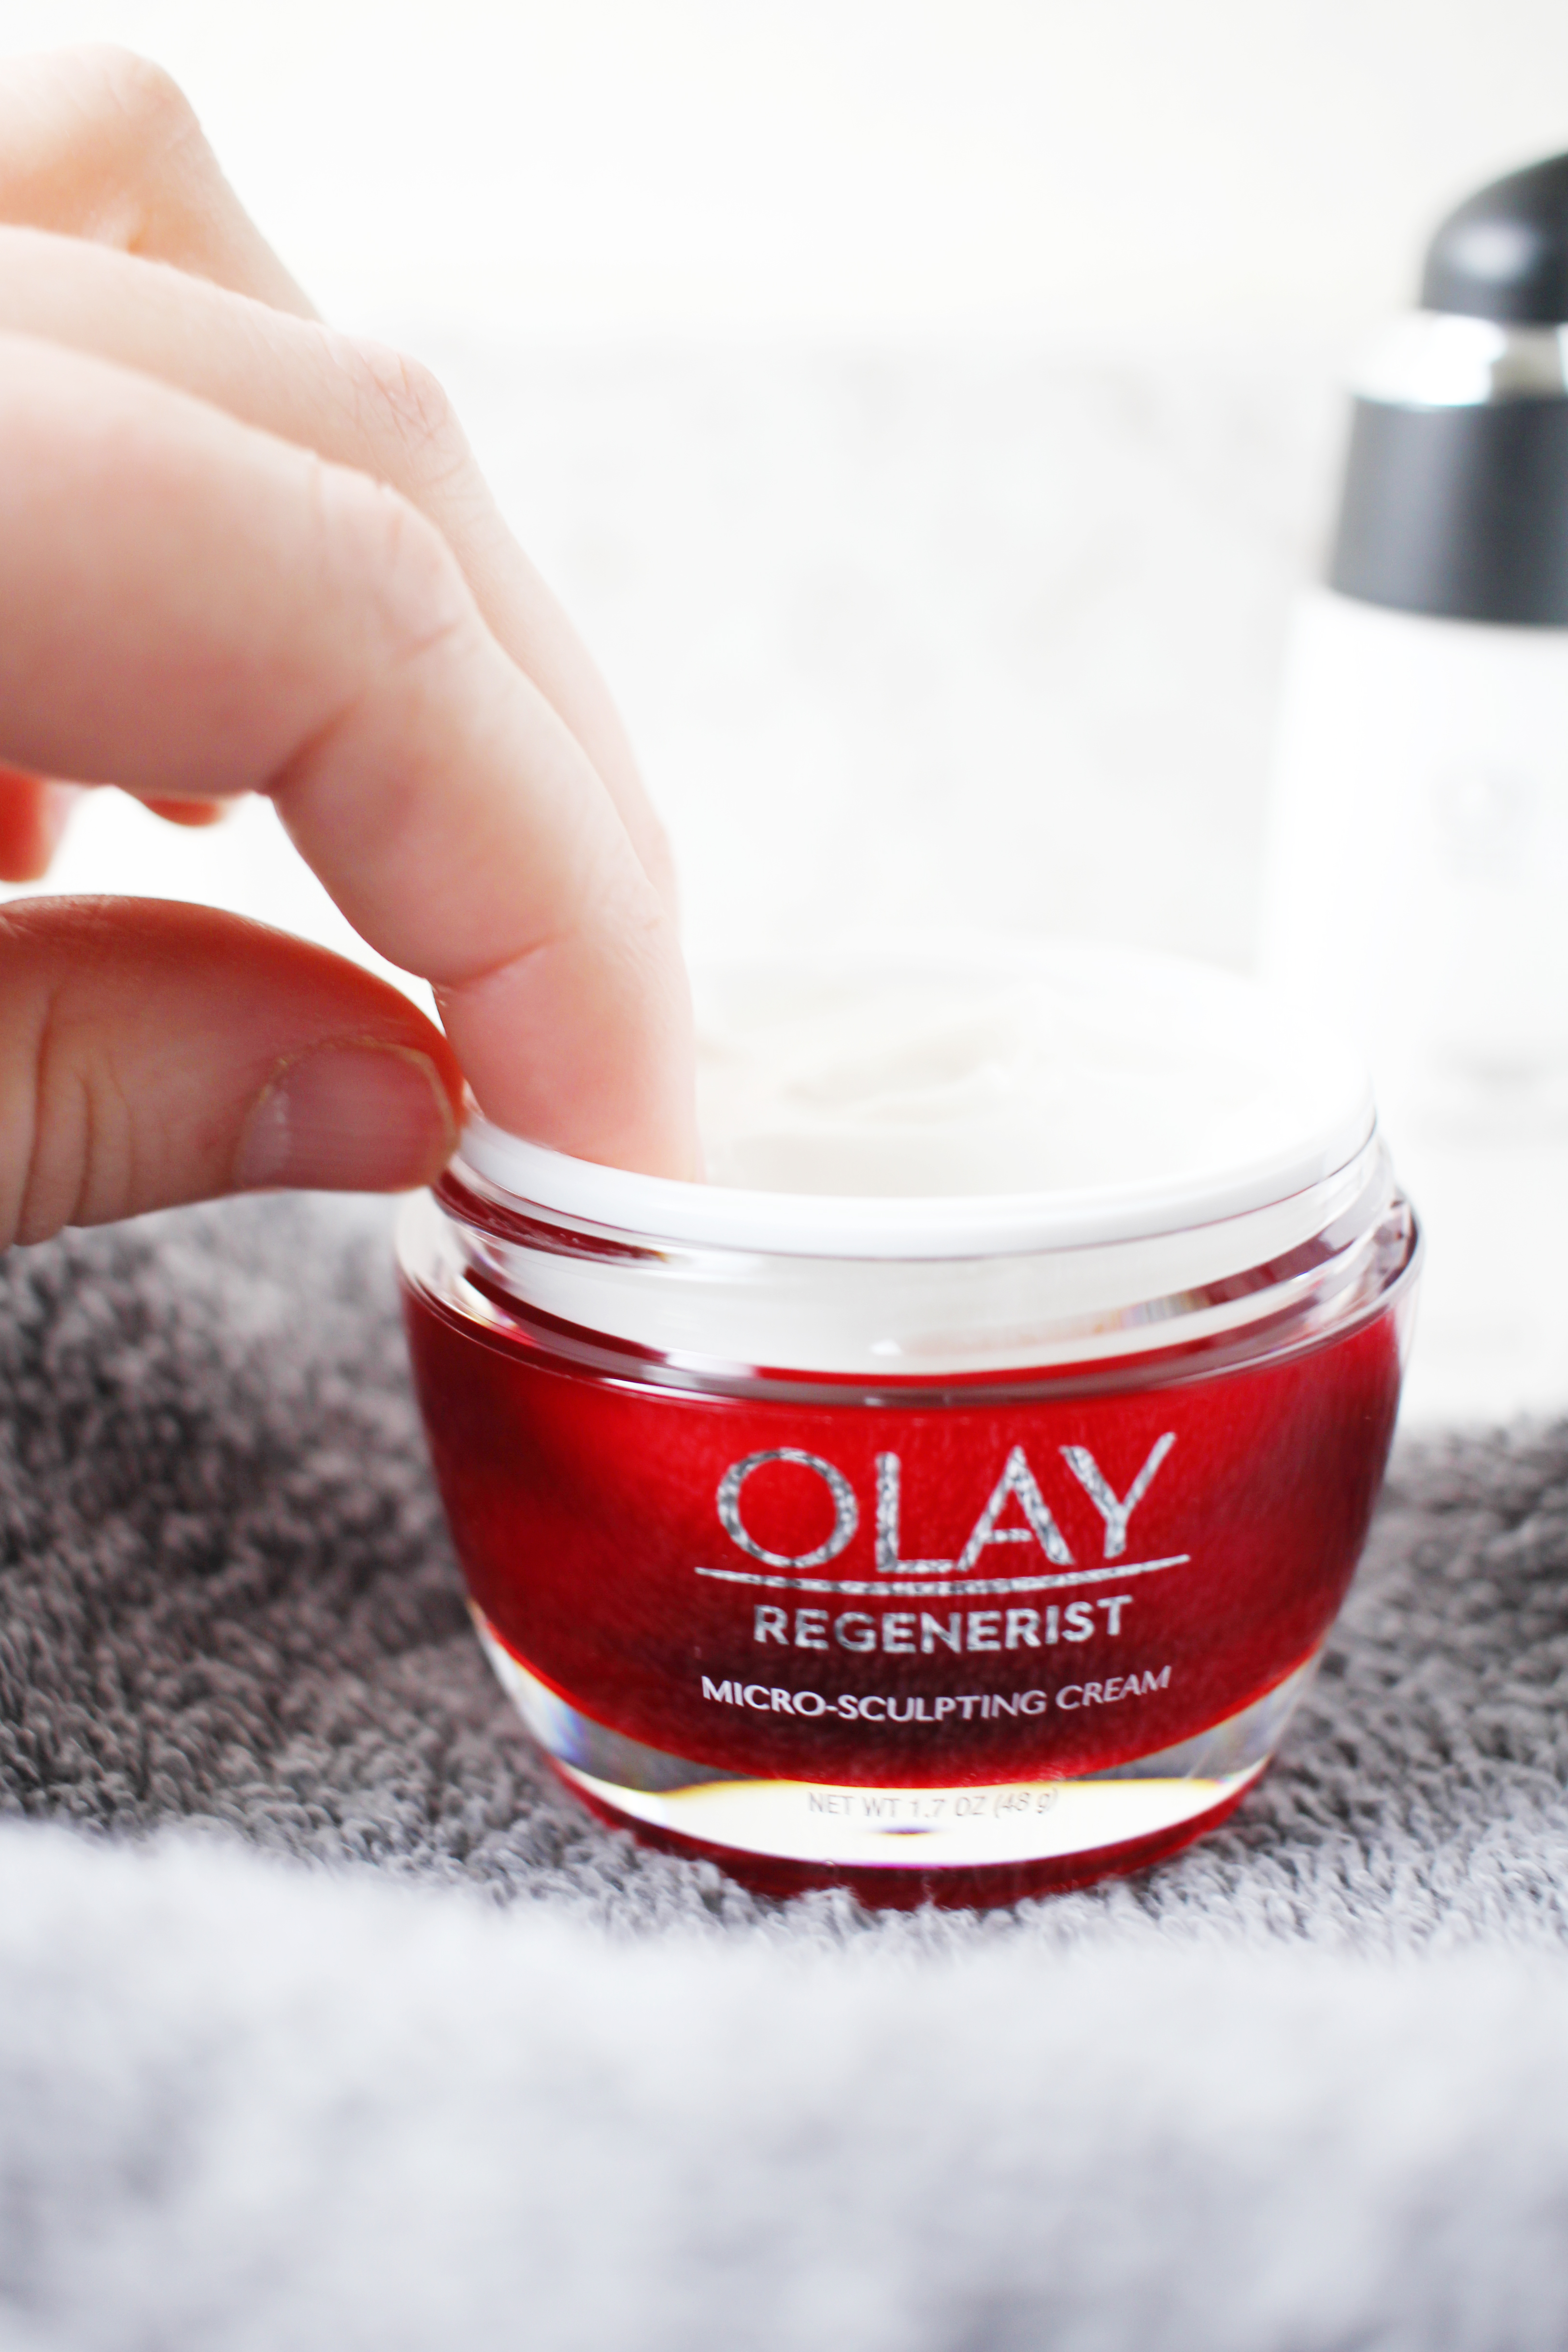 Reset my skincare routine with Olay